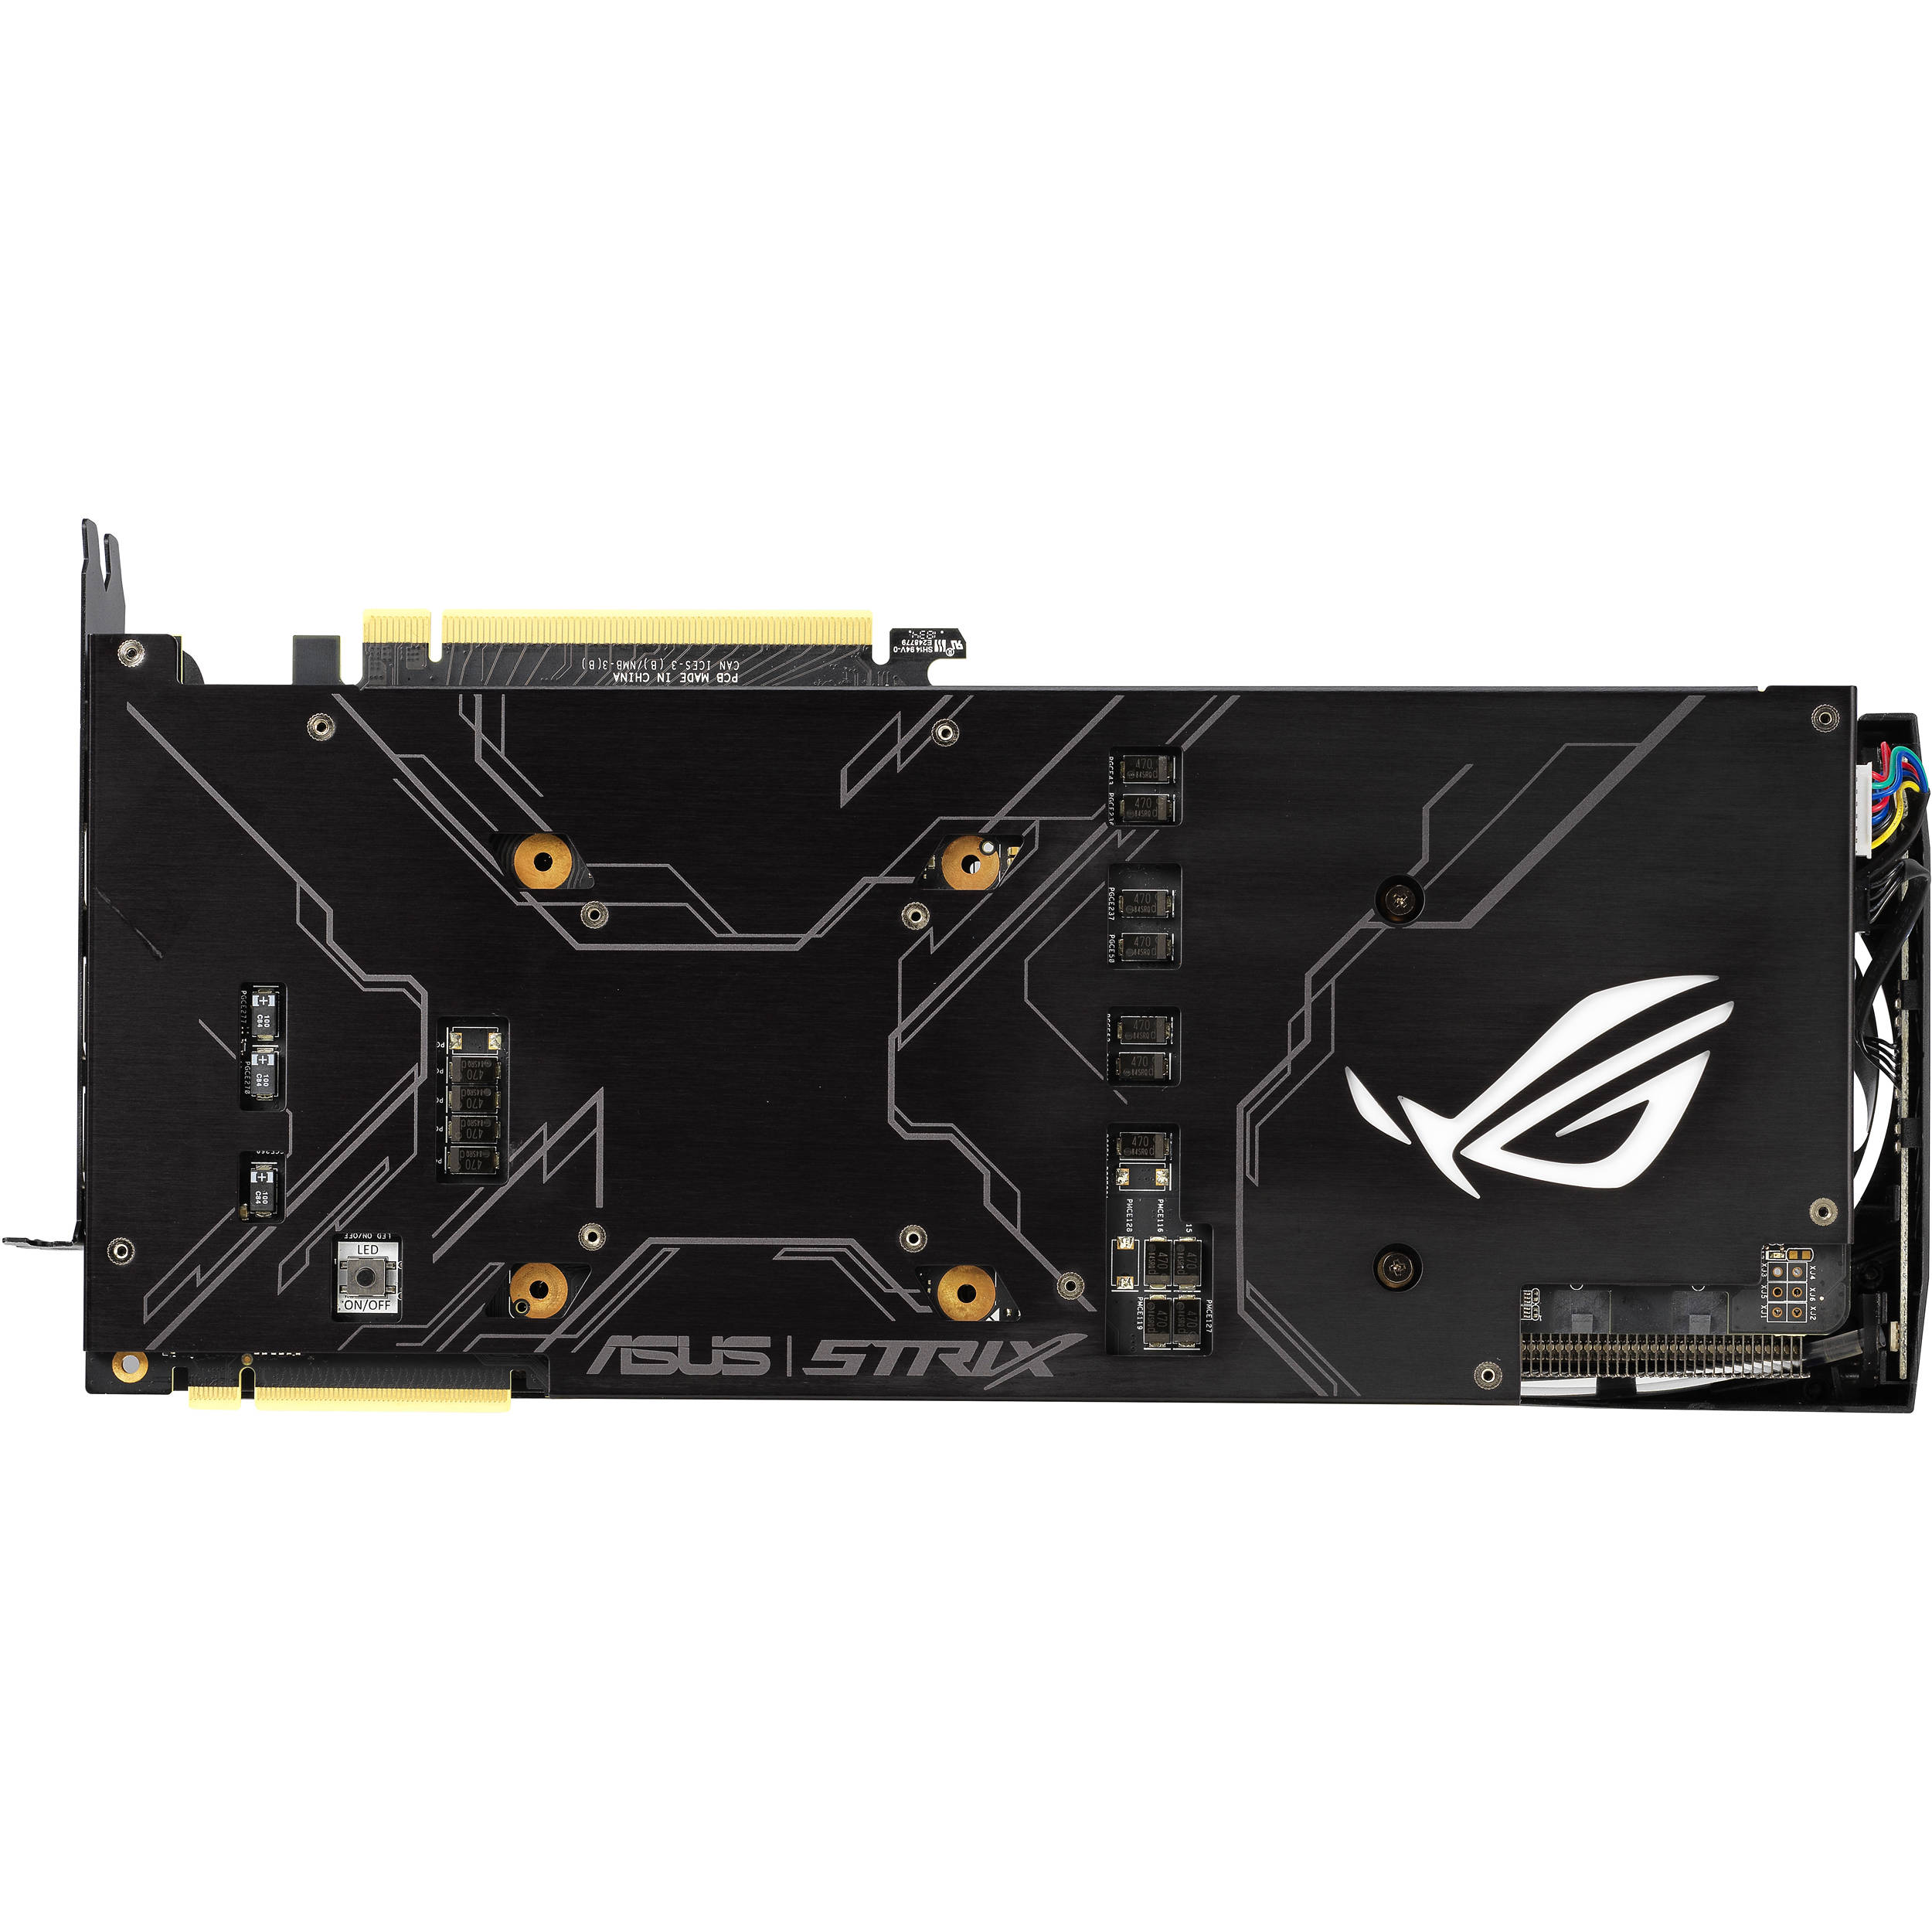 ASUS Republic of Gamers Strix GeForce RTX 2080 Ti OC Edition Graphics Card